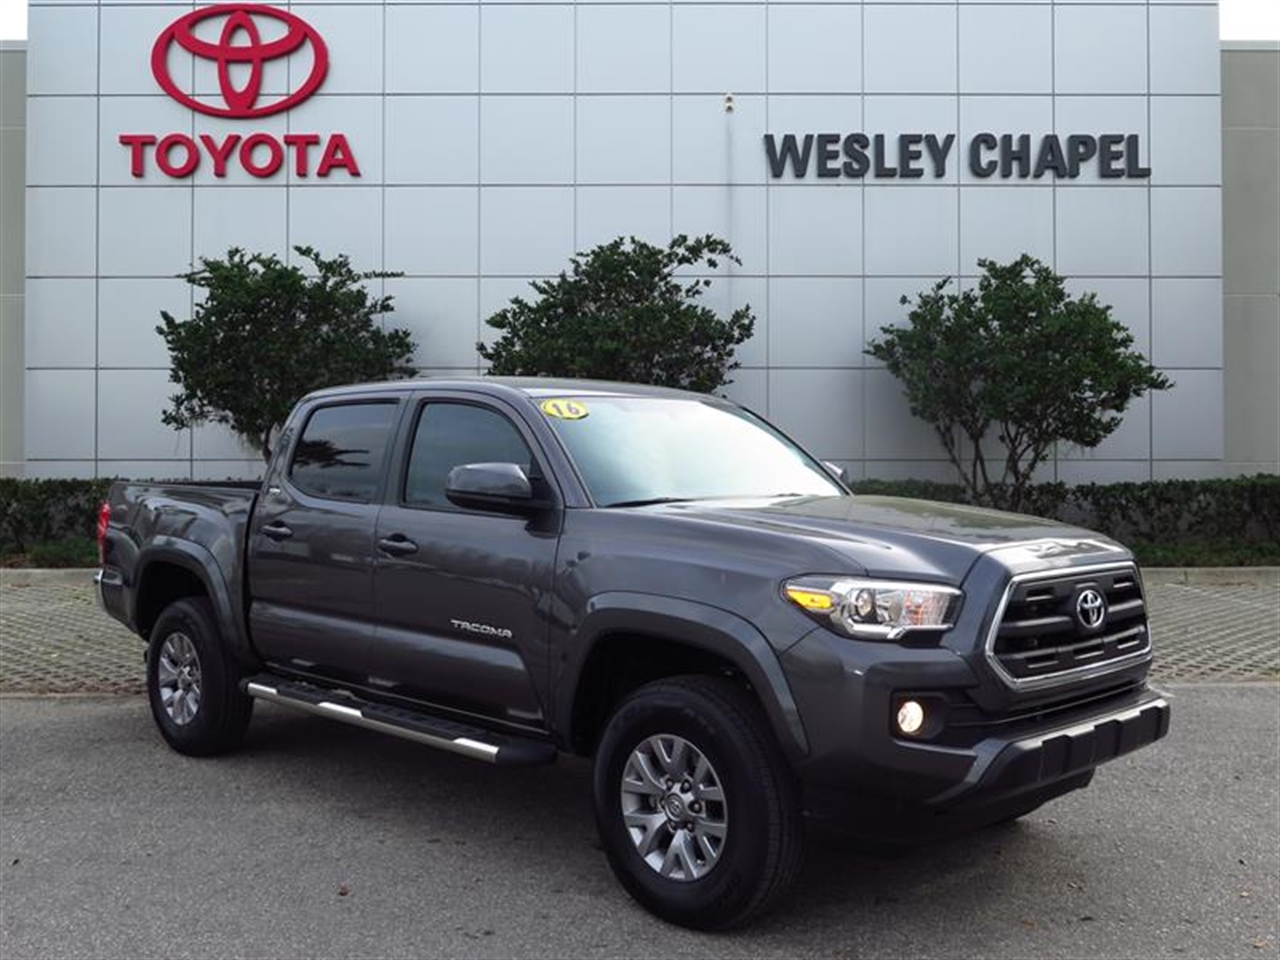 2016 TOYOTA TACOMA 2WD Double Cab I4 AT SR5 0 miles 2 12V DC Power Outlets 4-Way Driver Seat -i